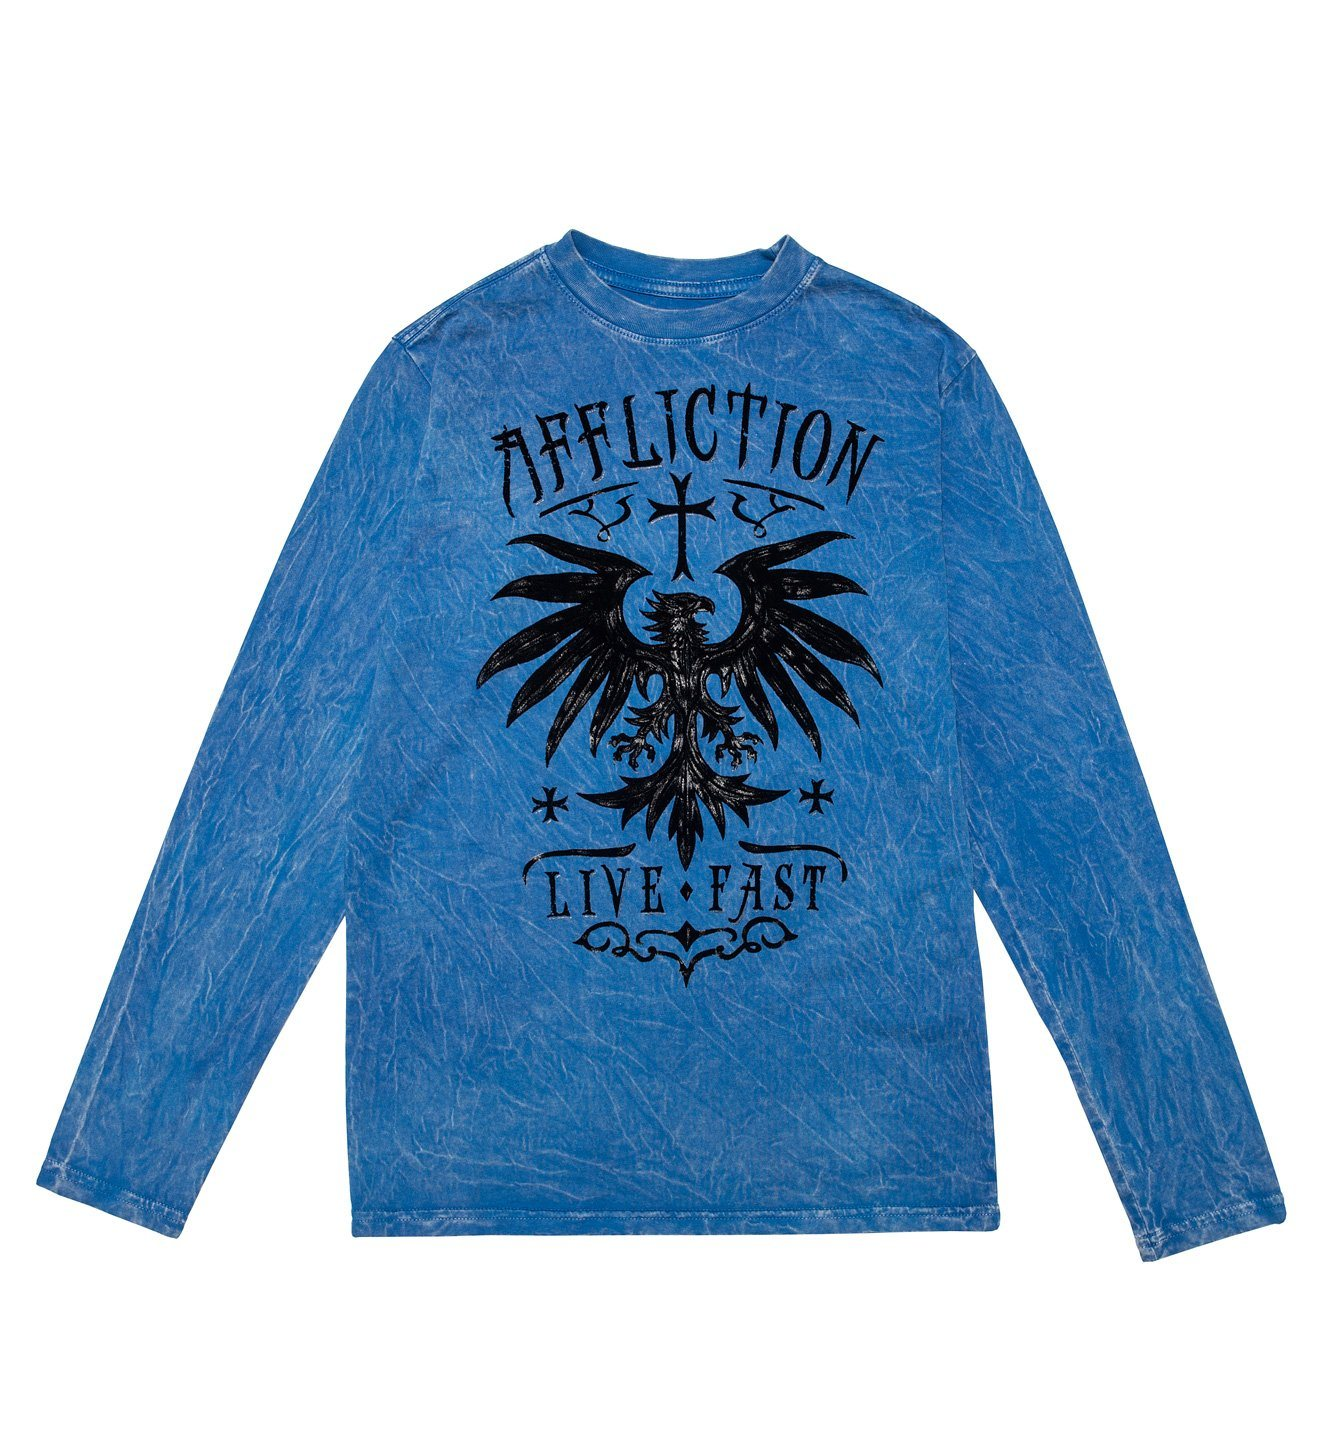 Rebel Rouser - Kids Short Sleeve Tees - Affliction Clothing